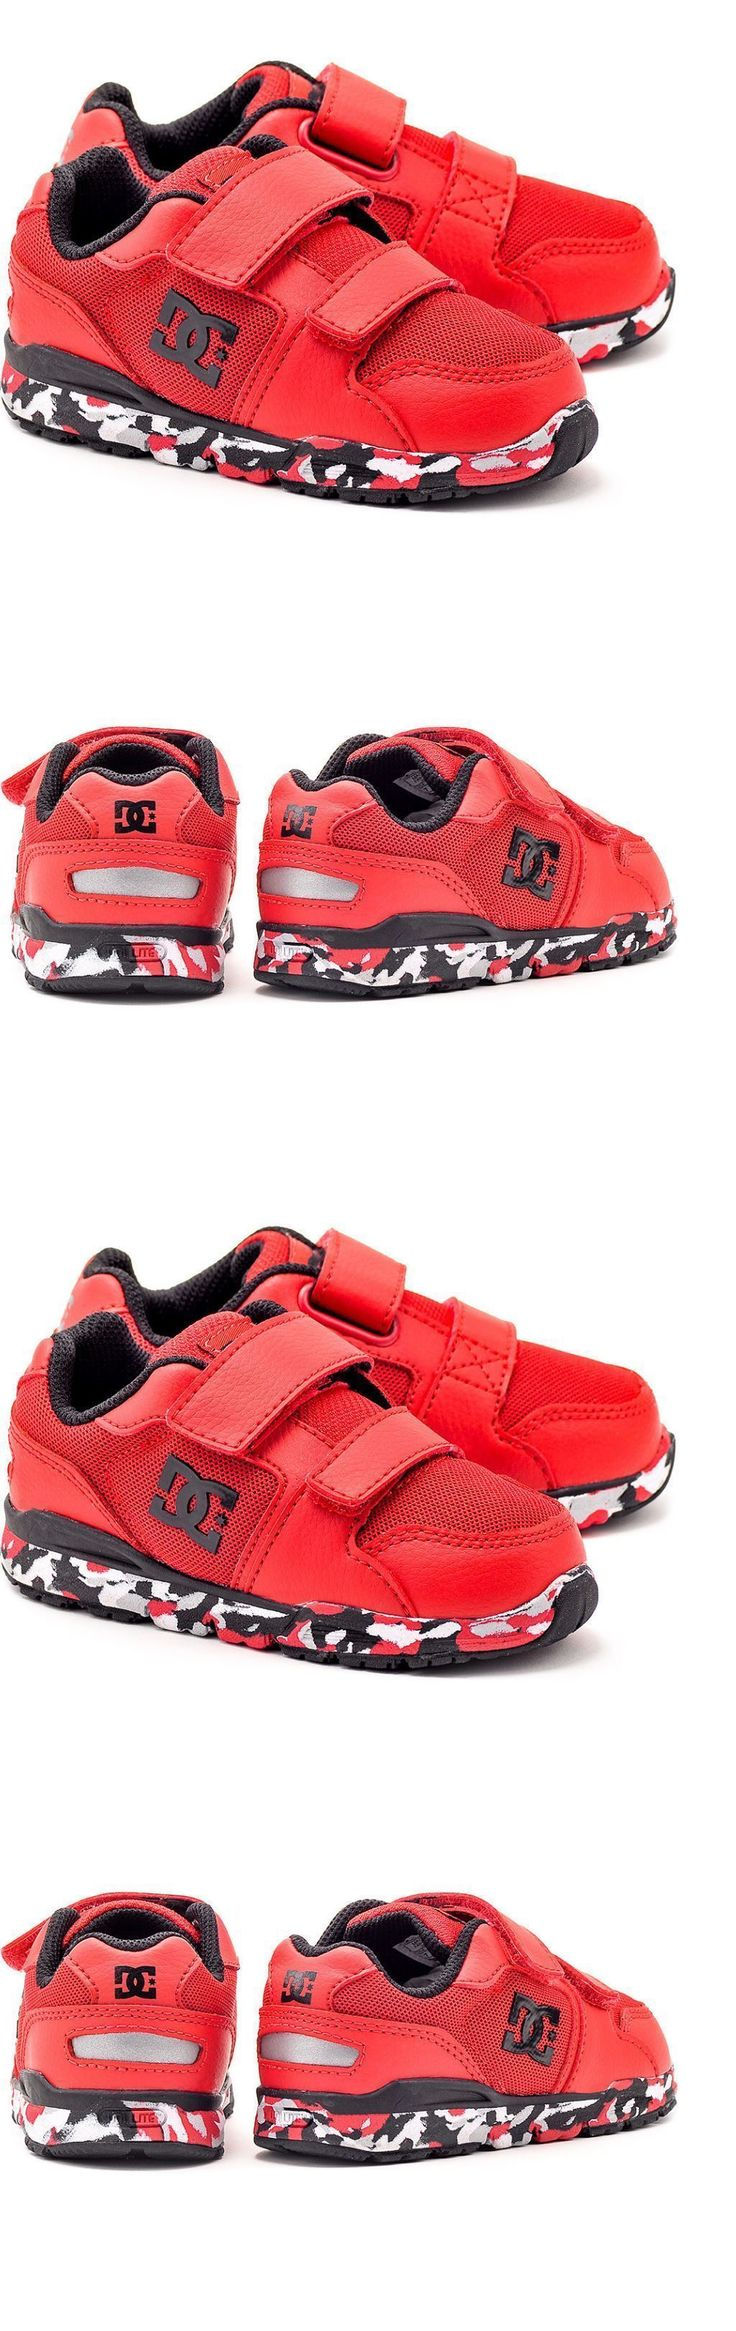 Infant Shoes: Dc Forter V Black Red White Infant Toddler Baby Boy Shoes Sneakers Size 6-9 -> BUY IT NOW ONLY: $33.95 on eBay!